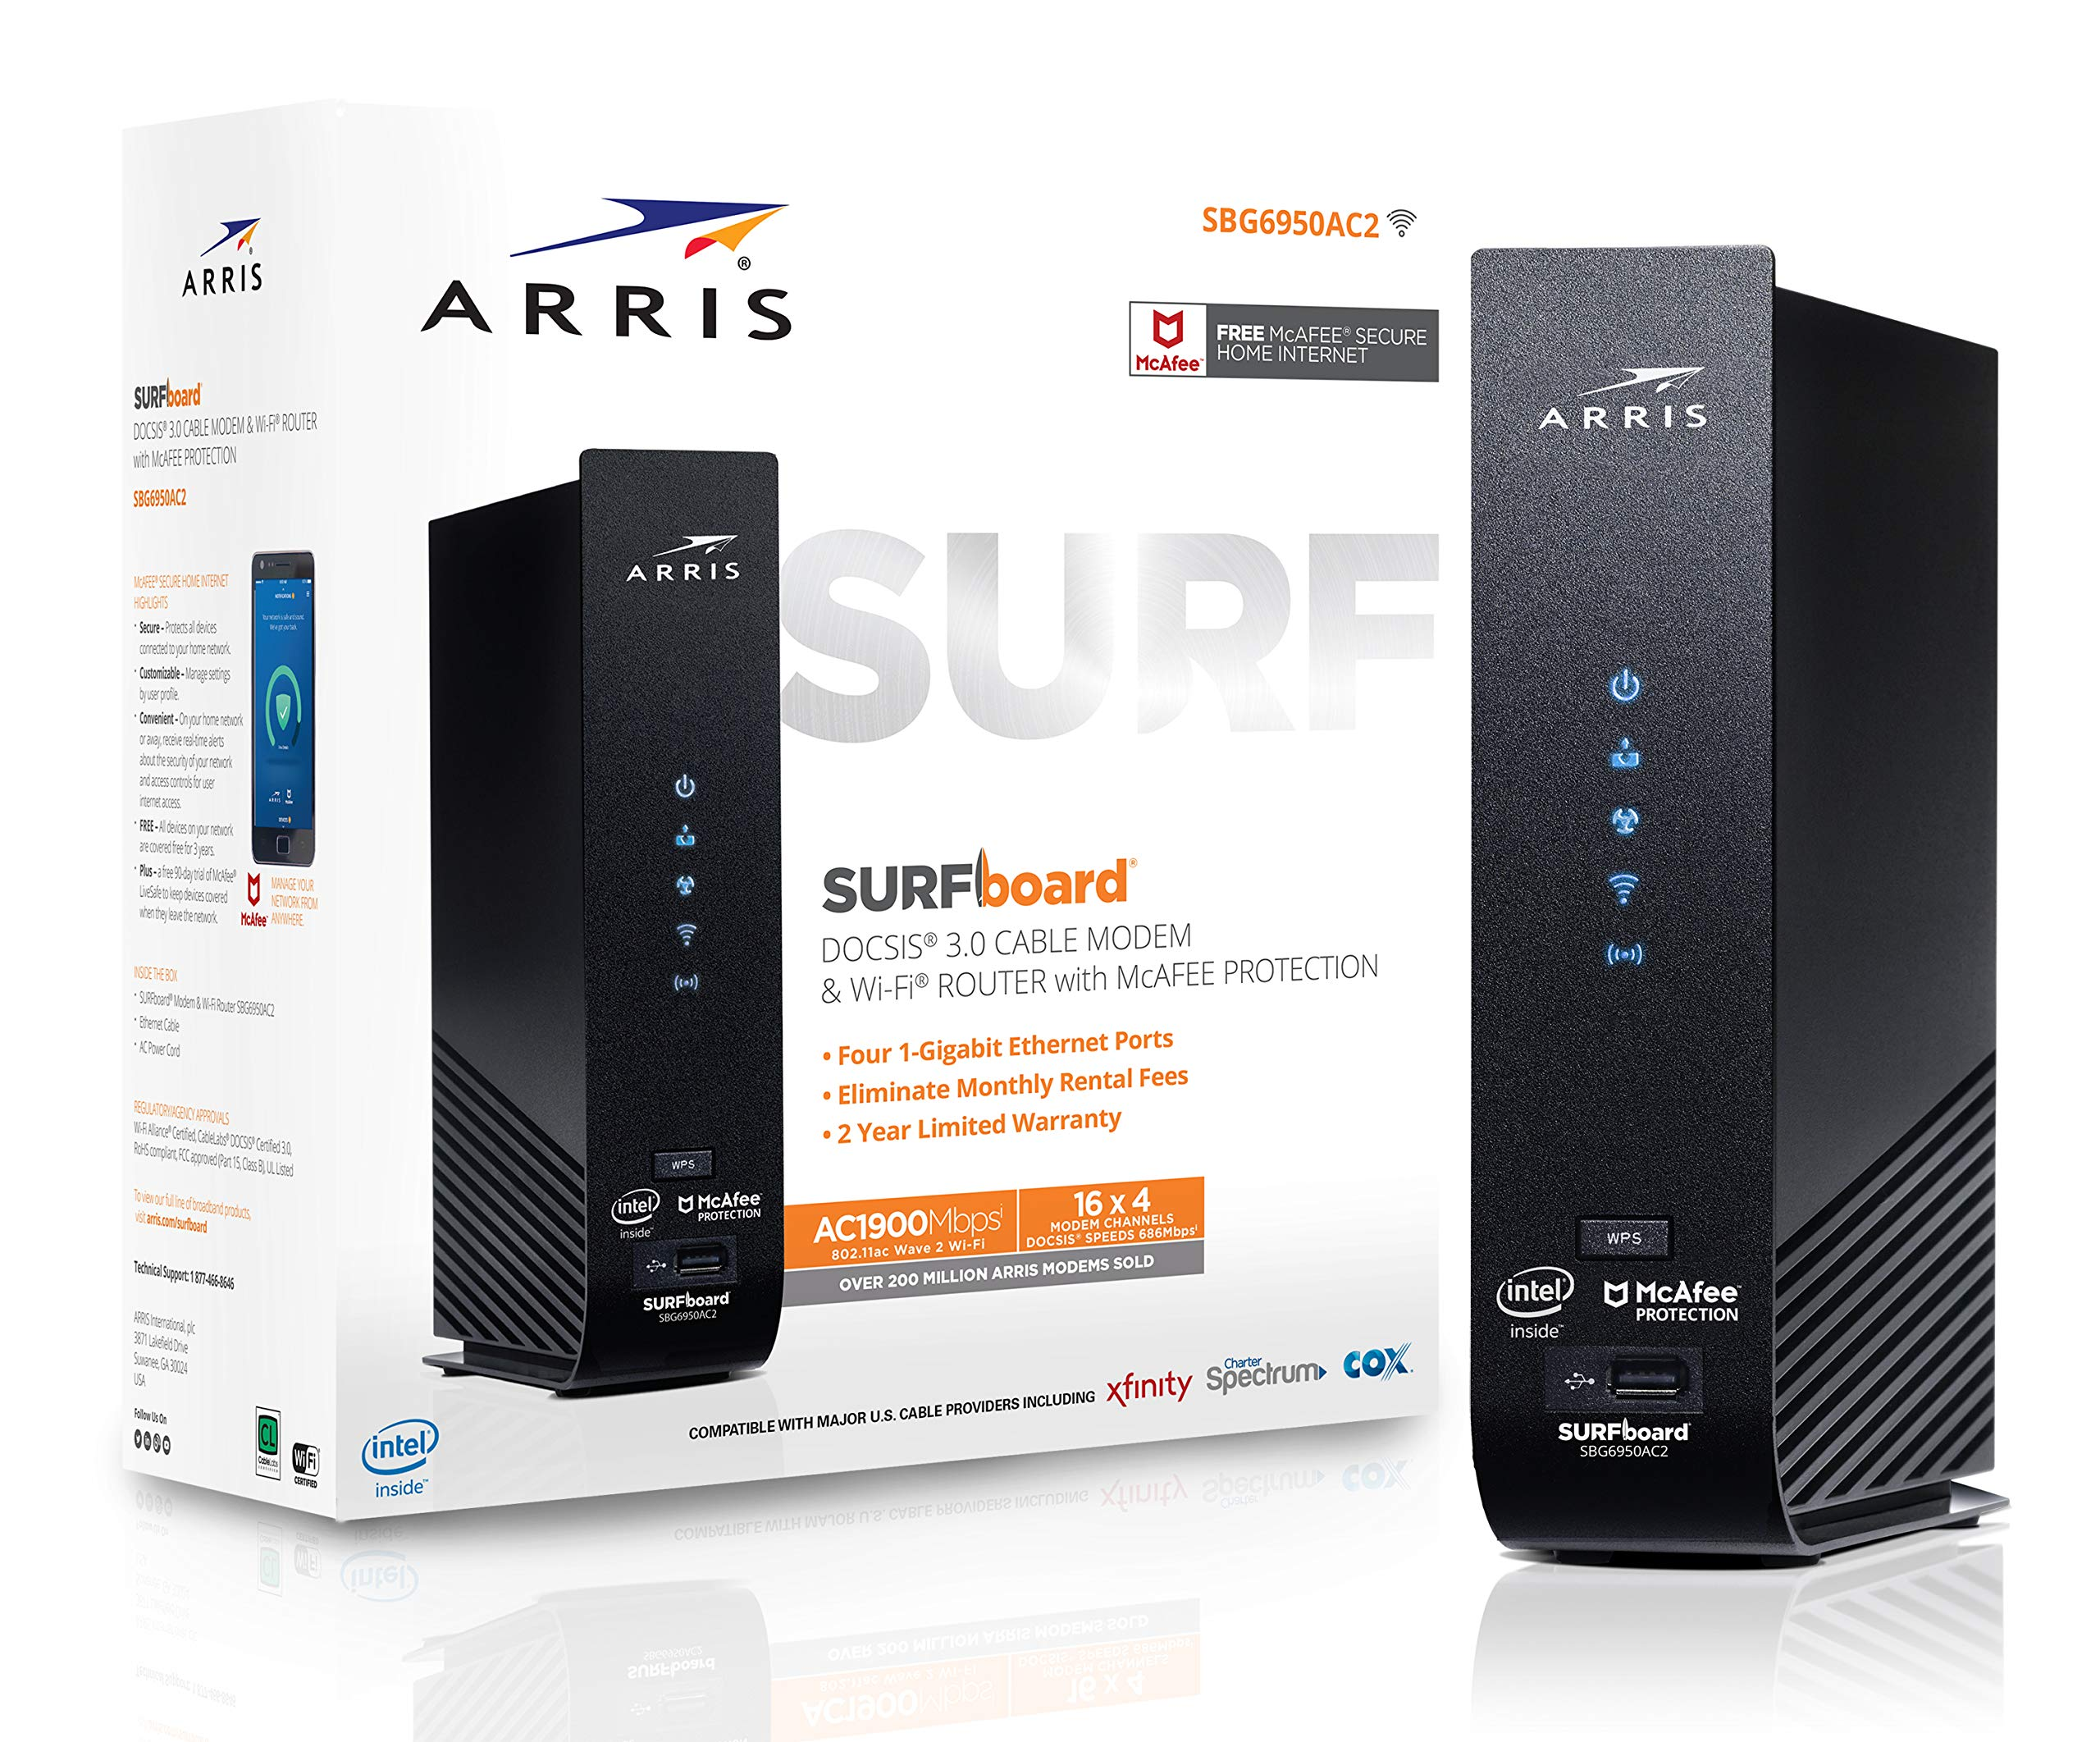 ARRIS SURFboard (16x4) DOCSIS 3.0 Cable Modem Plus AC1900 Dual Band Wi-Fi Router, 686 Mbps Max Speed, Certified for Comcast Xfinity, Spectrum, Cox & more (SBG6950AC2) by ARRIS